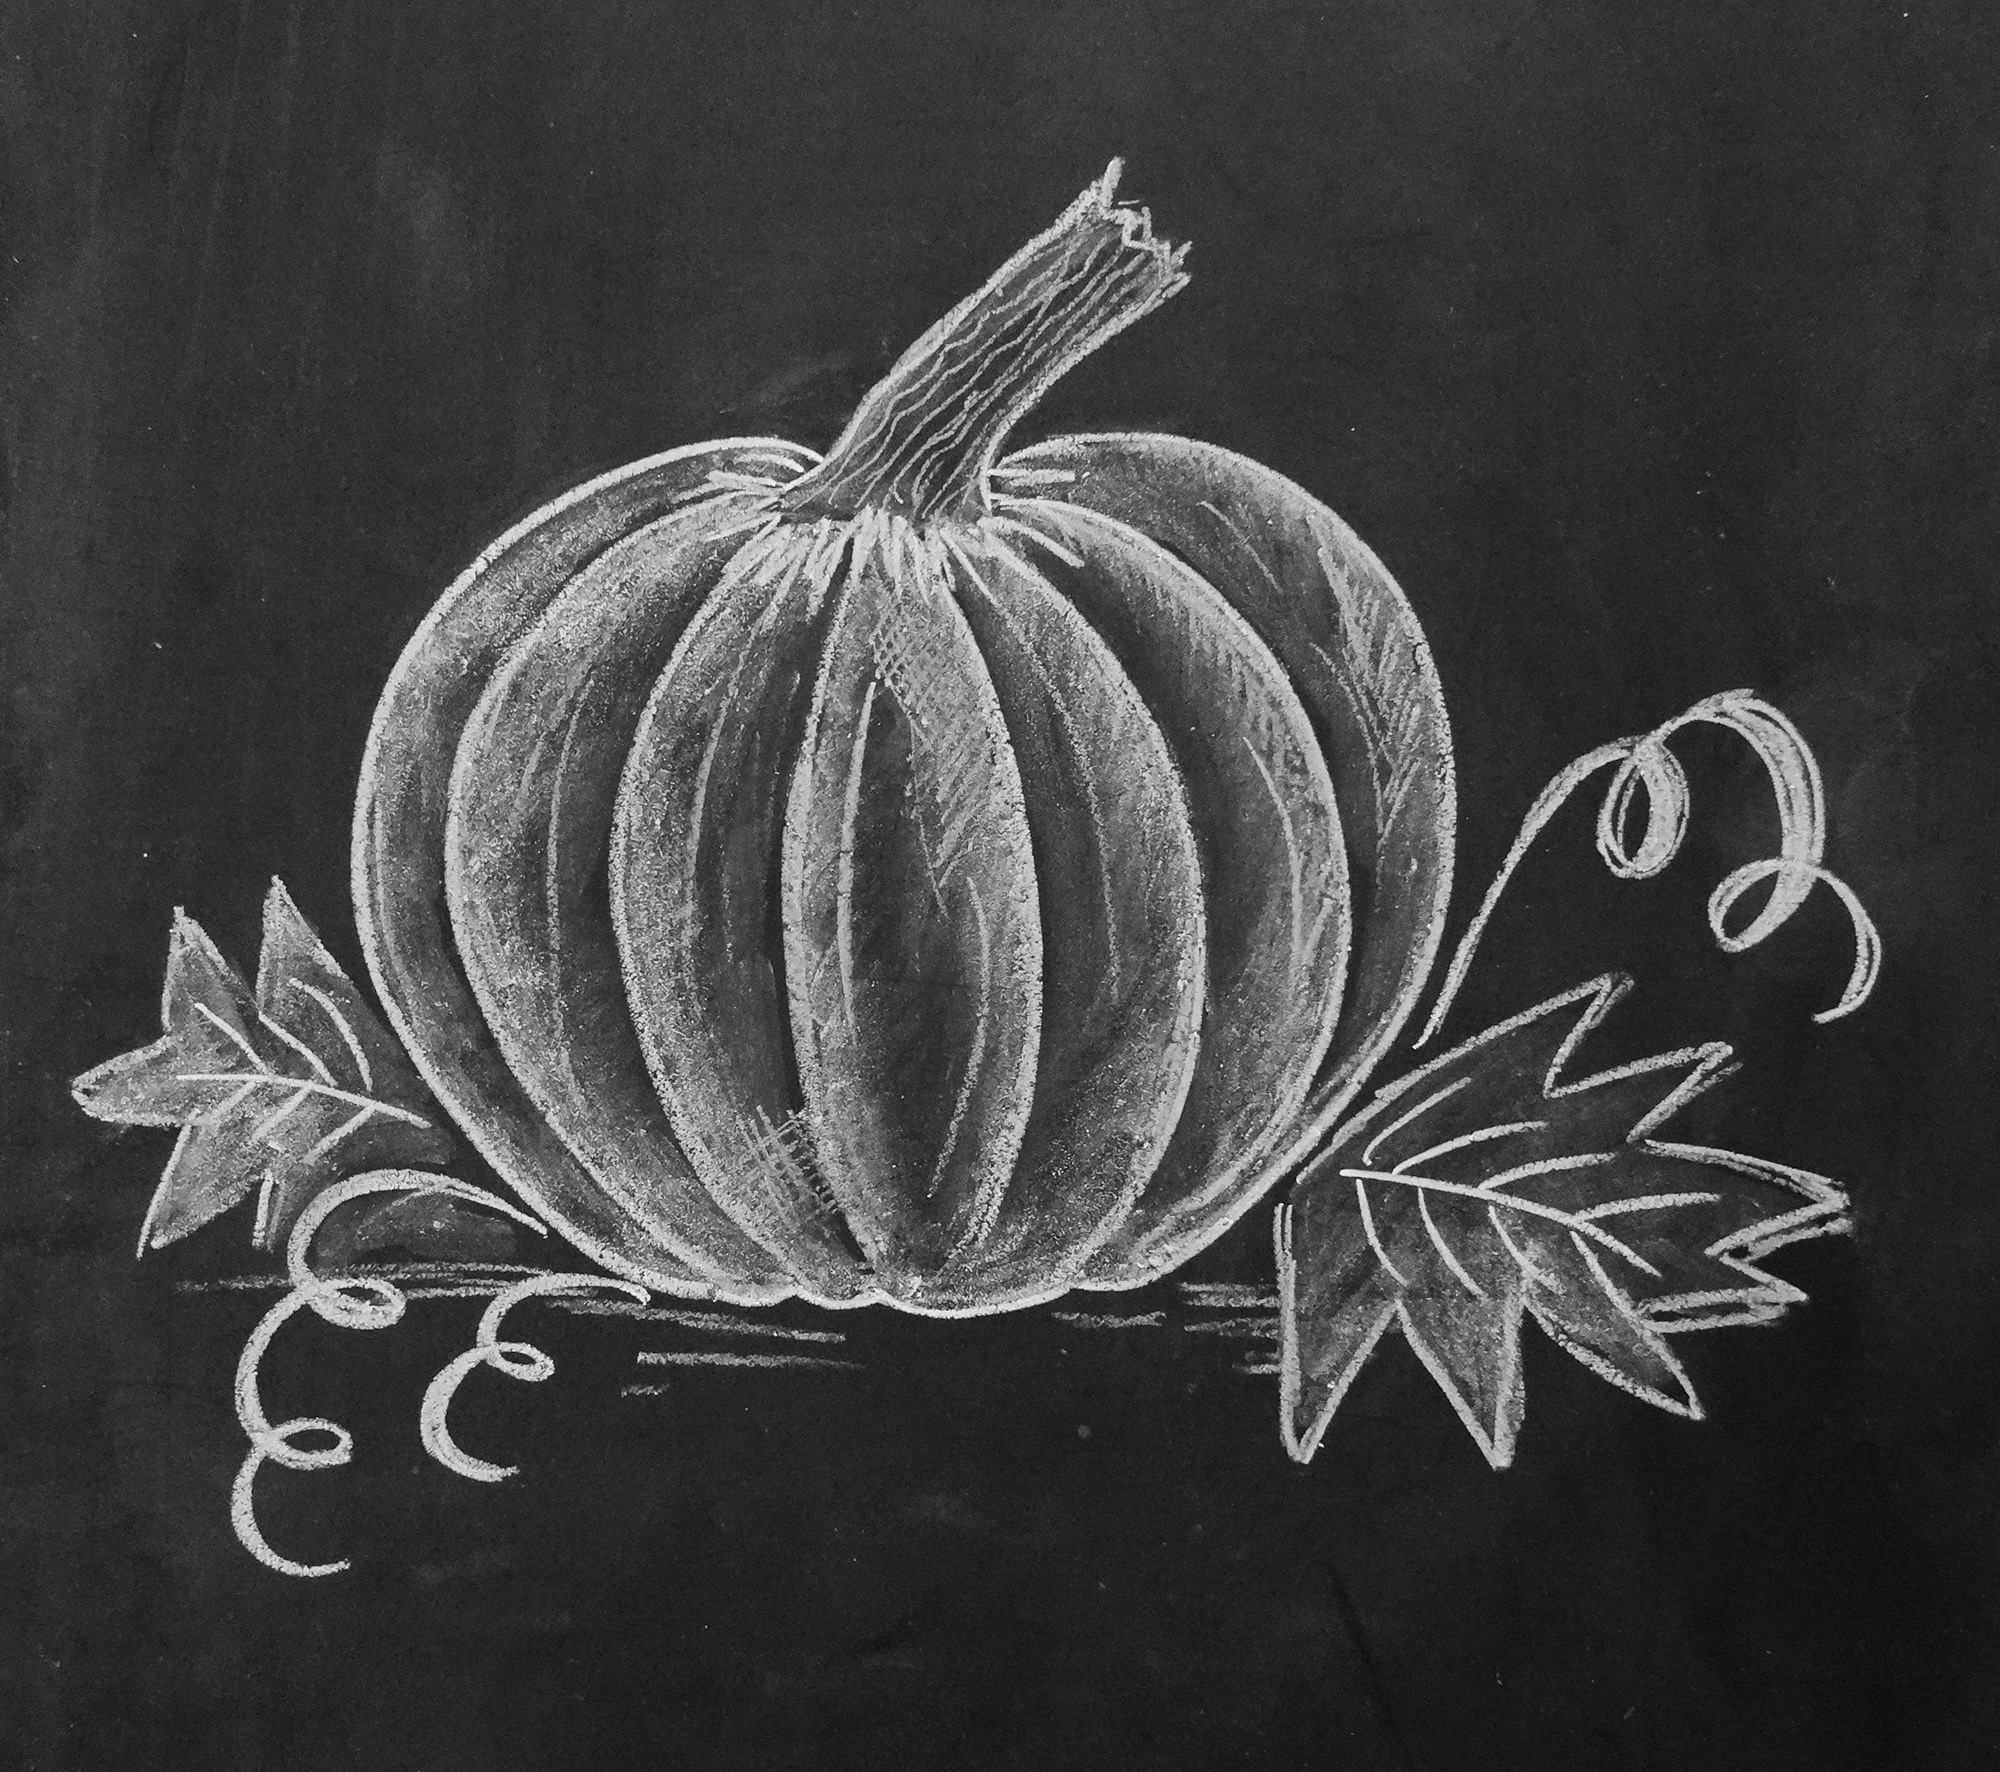 Drawn pumpkin chalk Author Draw of a gives